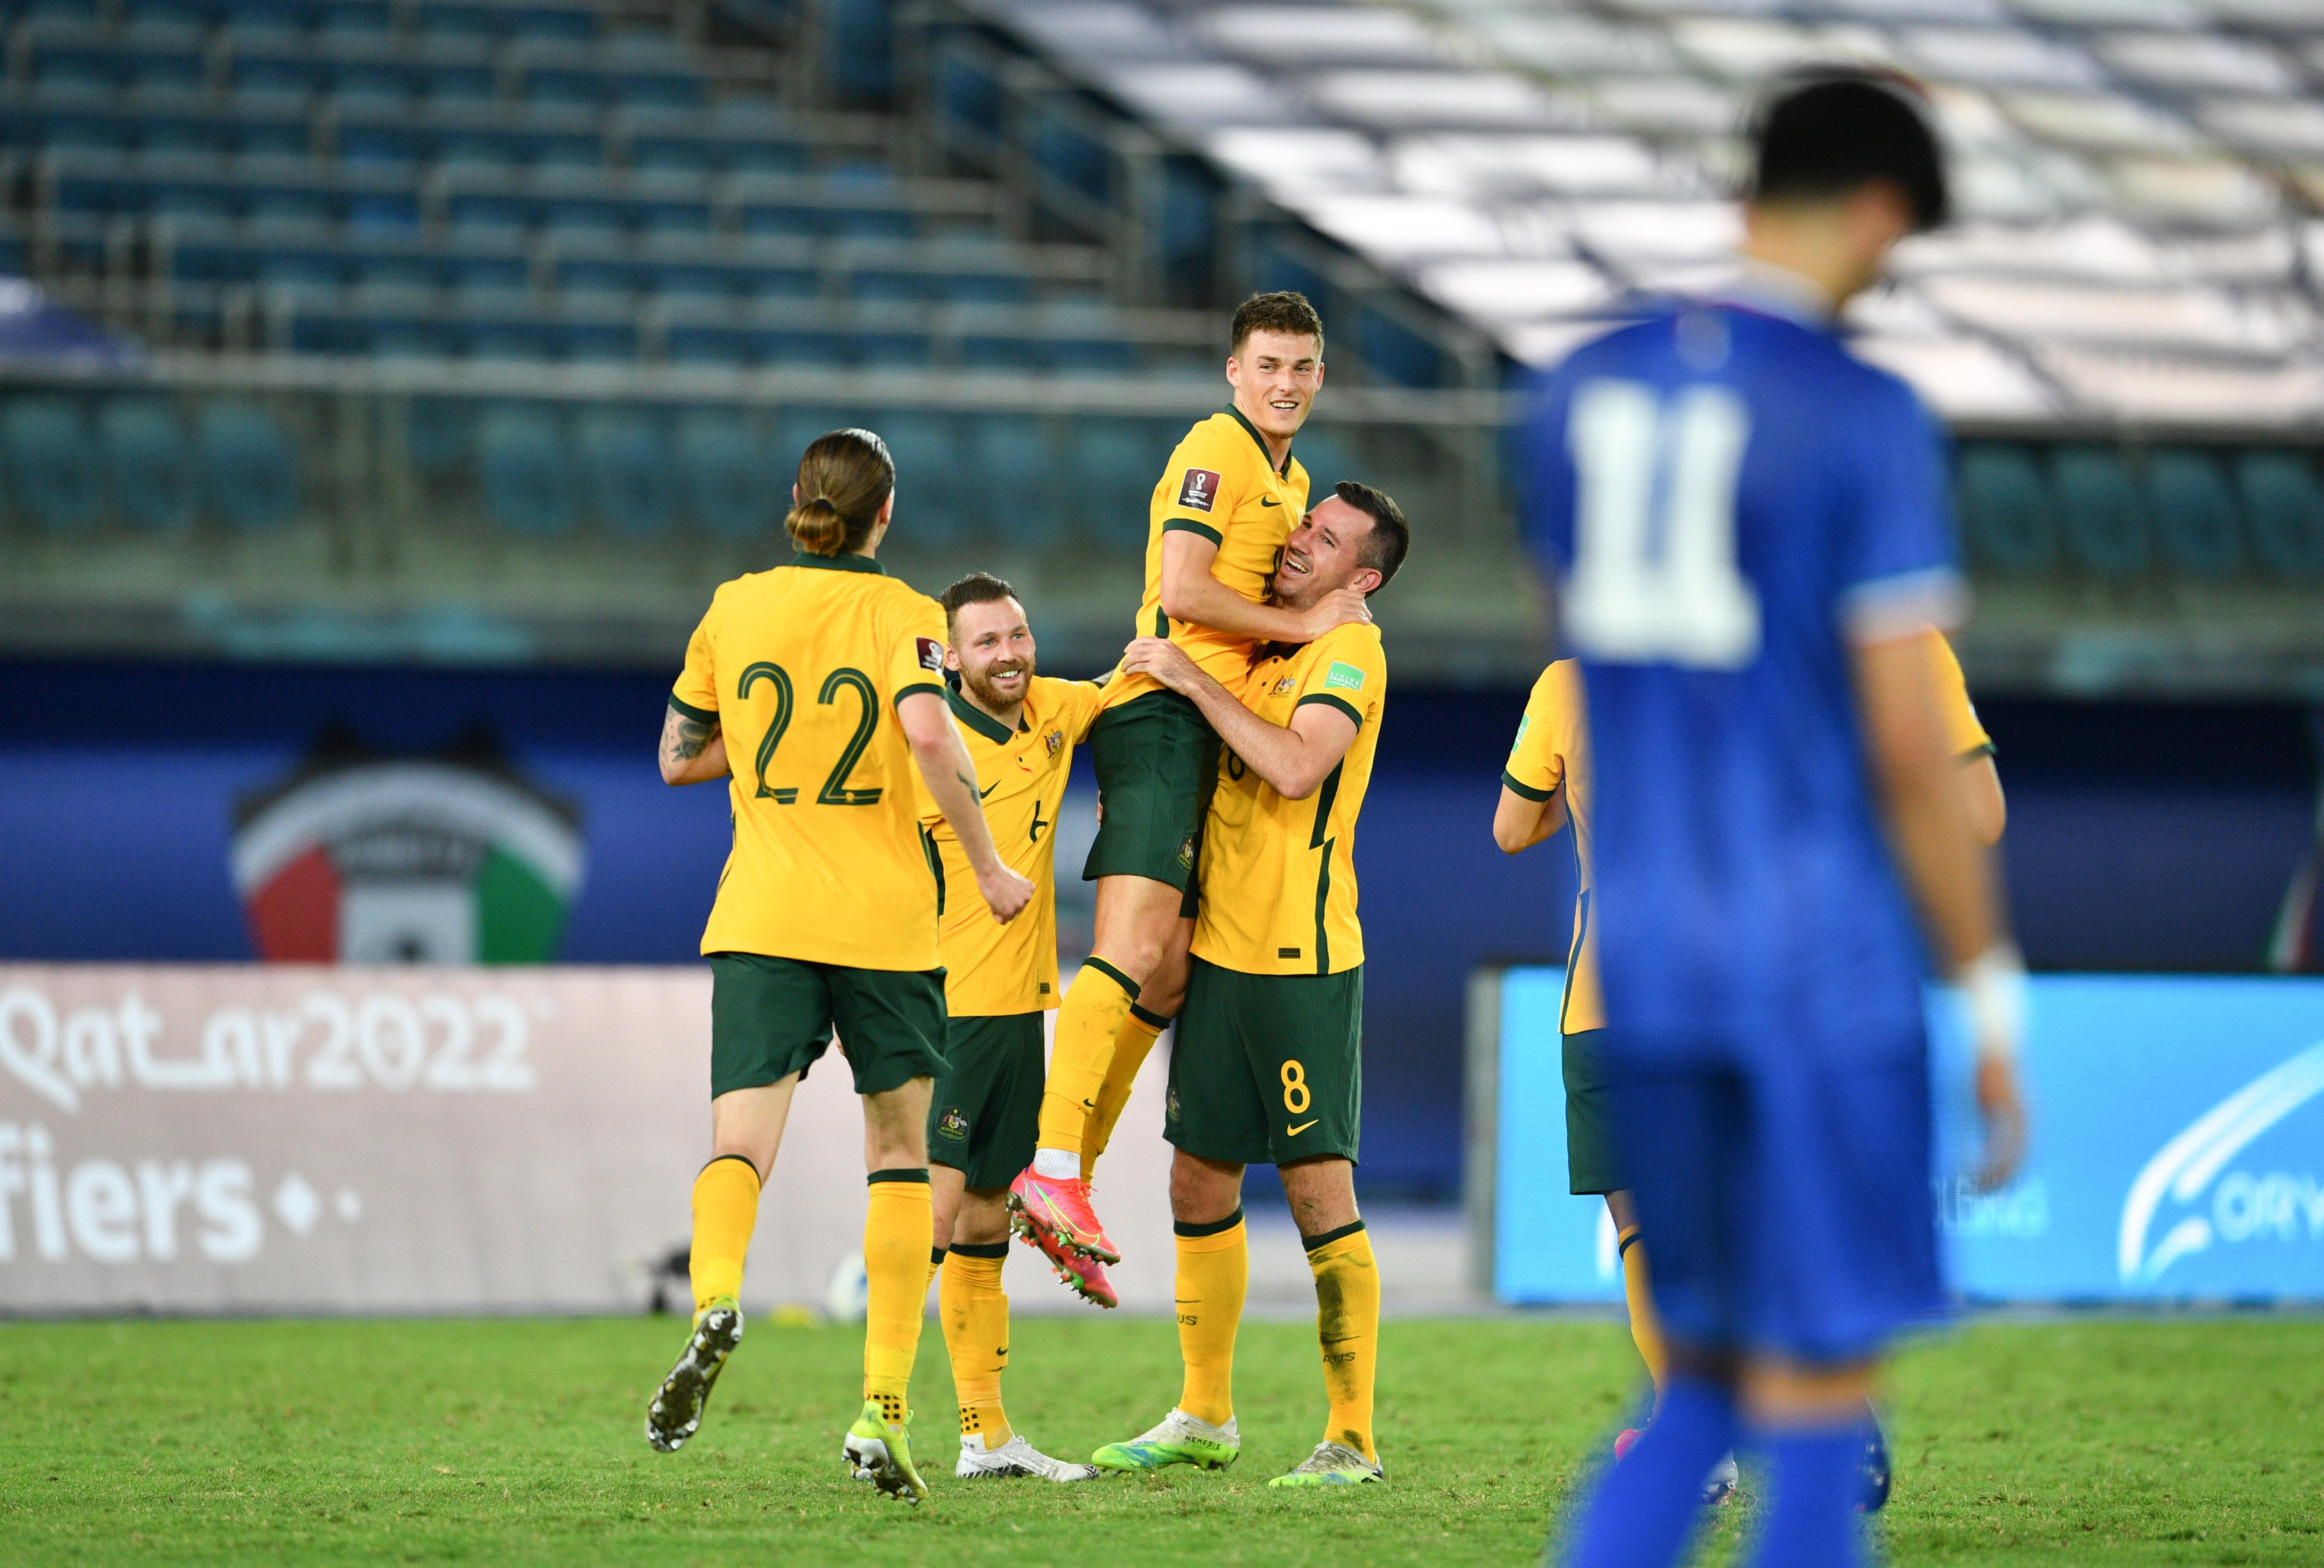 Gallery: The Socceroos advance in FIFA World Cup Qualifying with excellent document